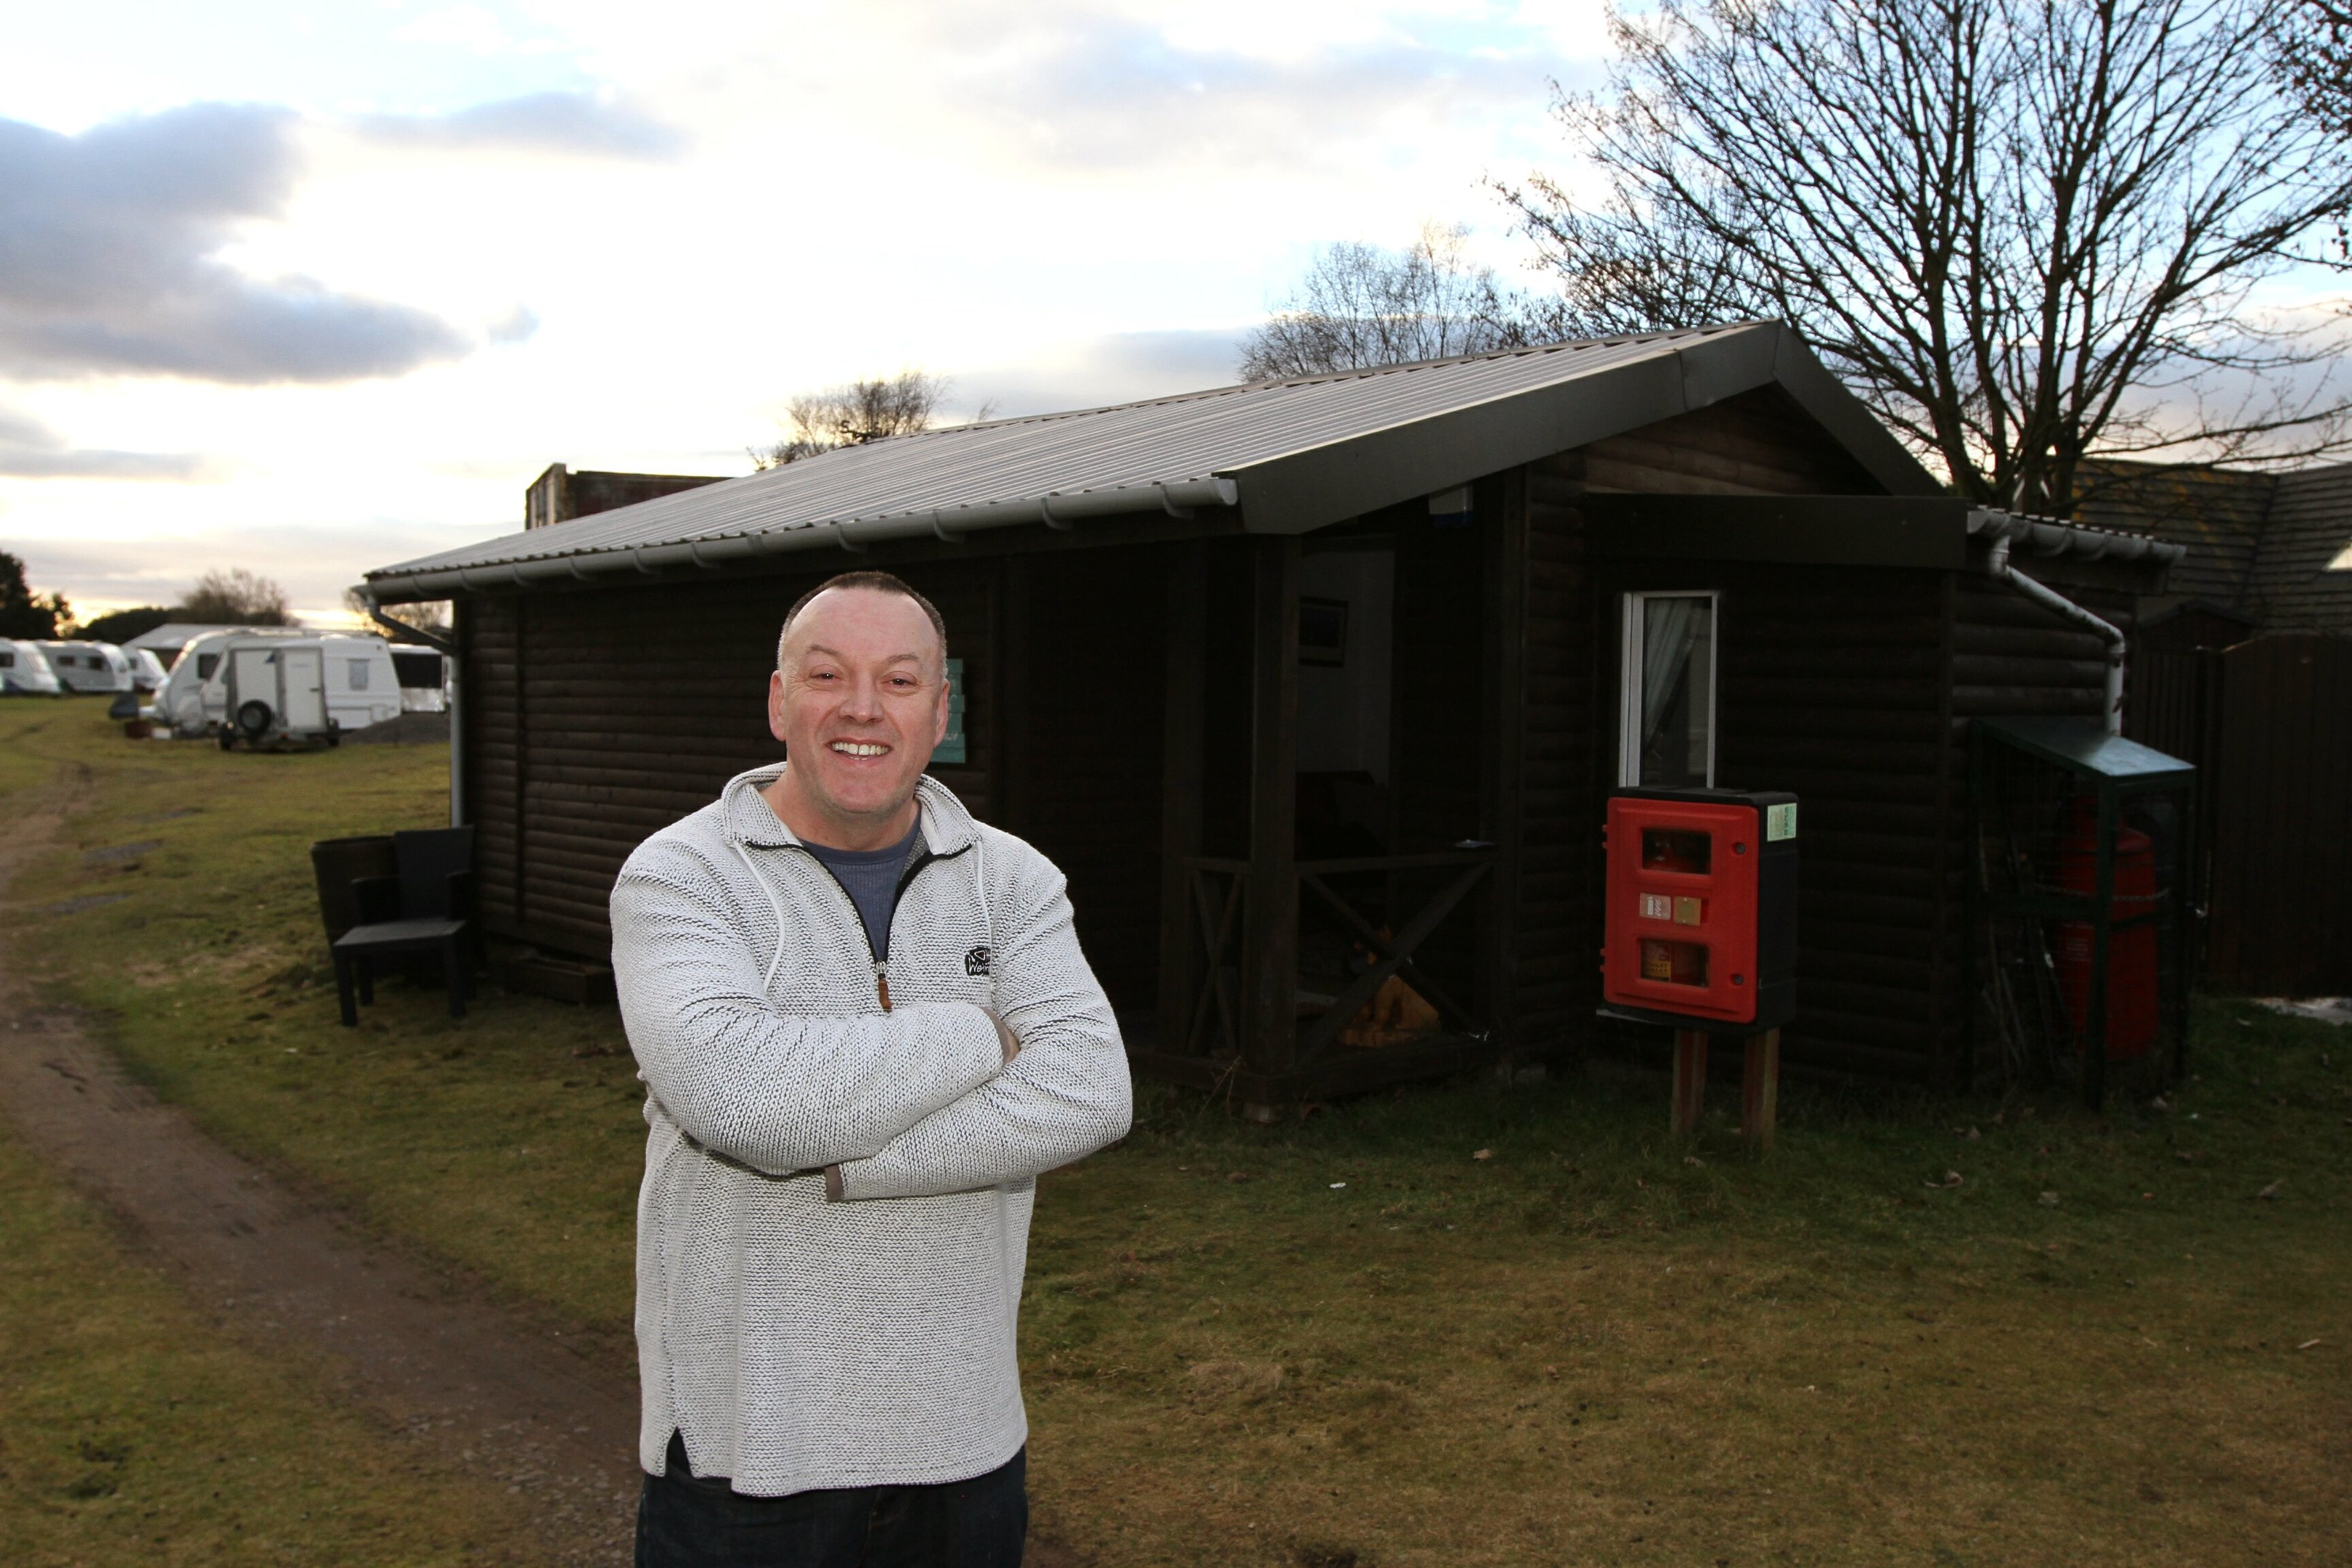 Angus Carnie outside his home, which he has built out of recycled materials costing him £40,000.